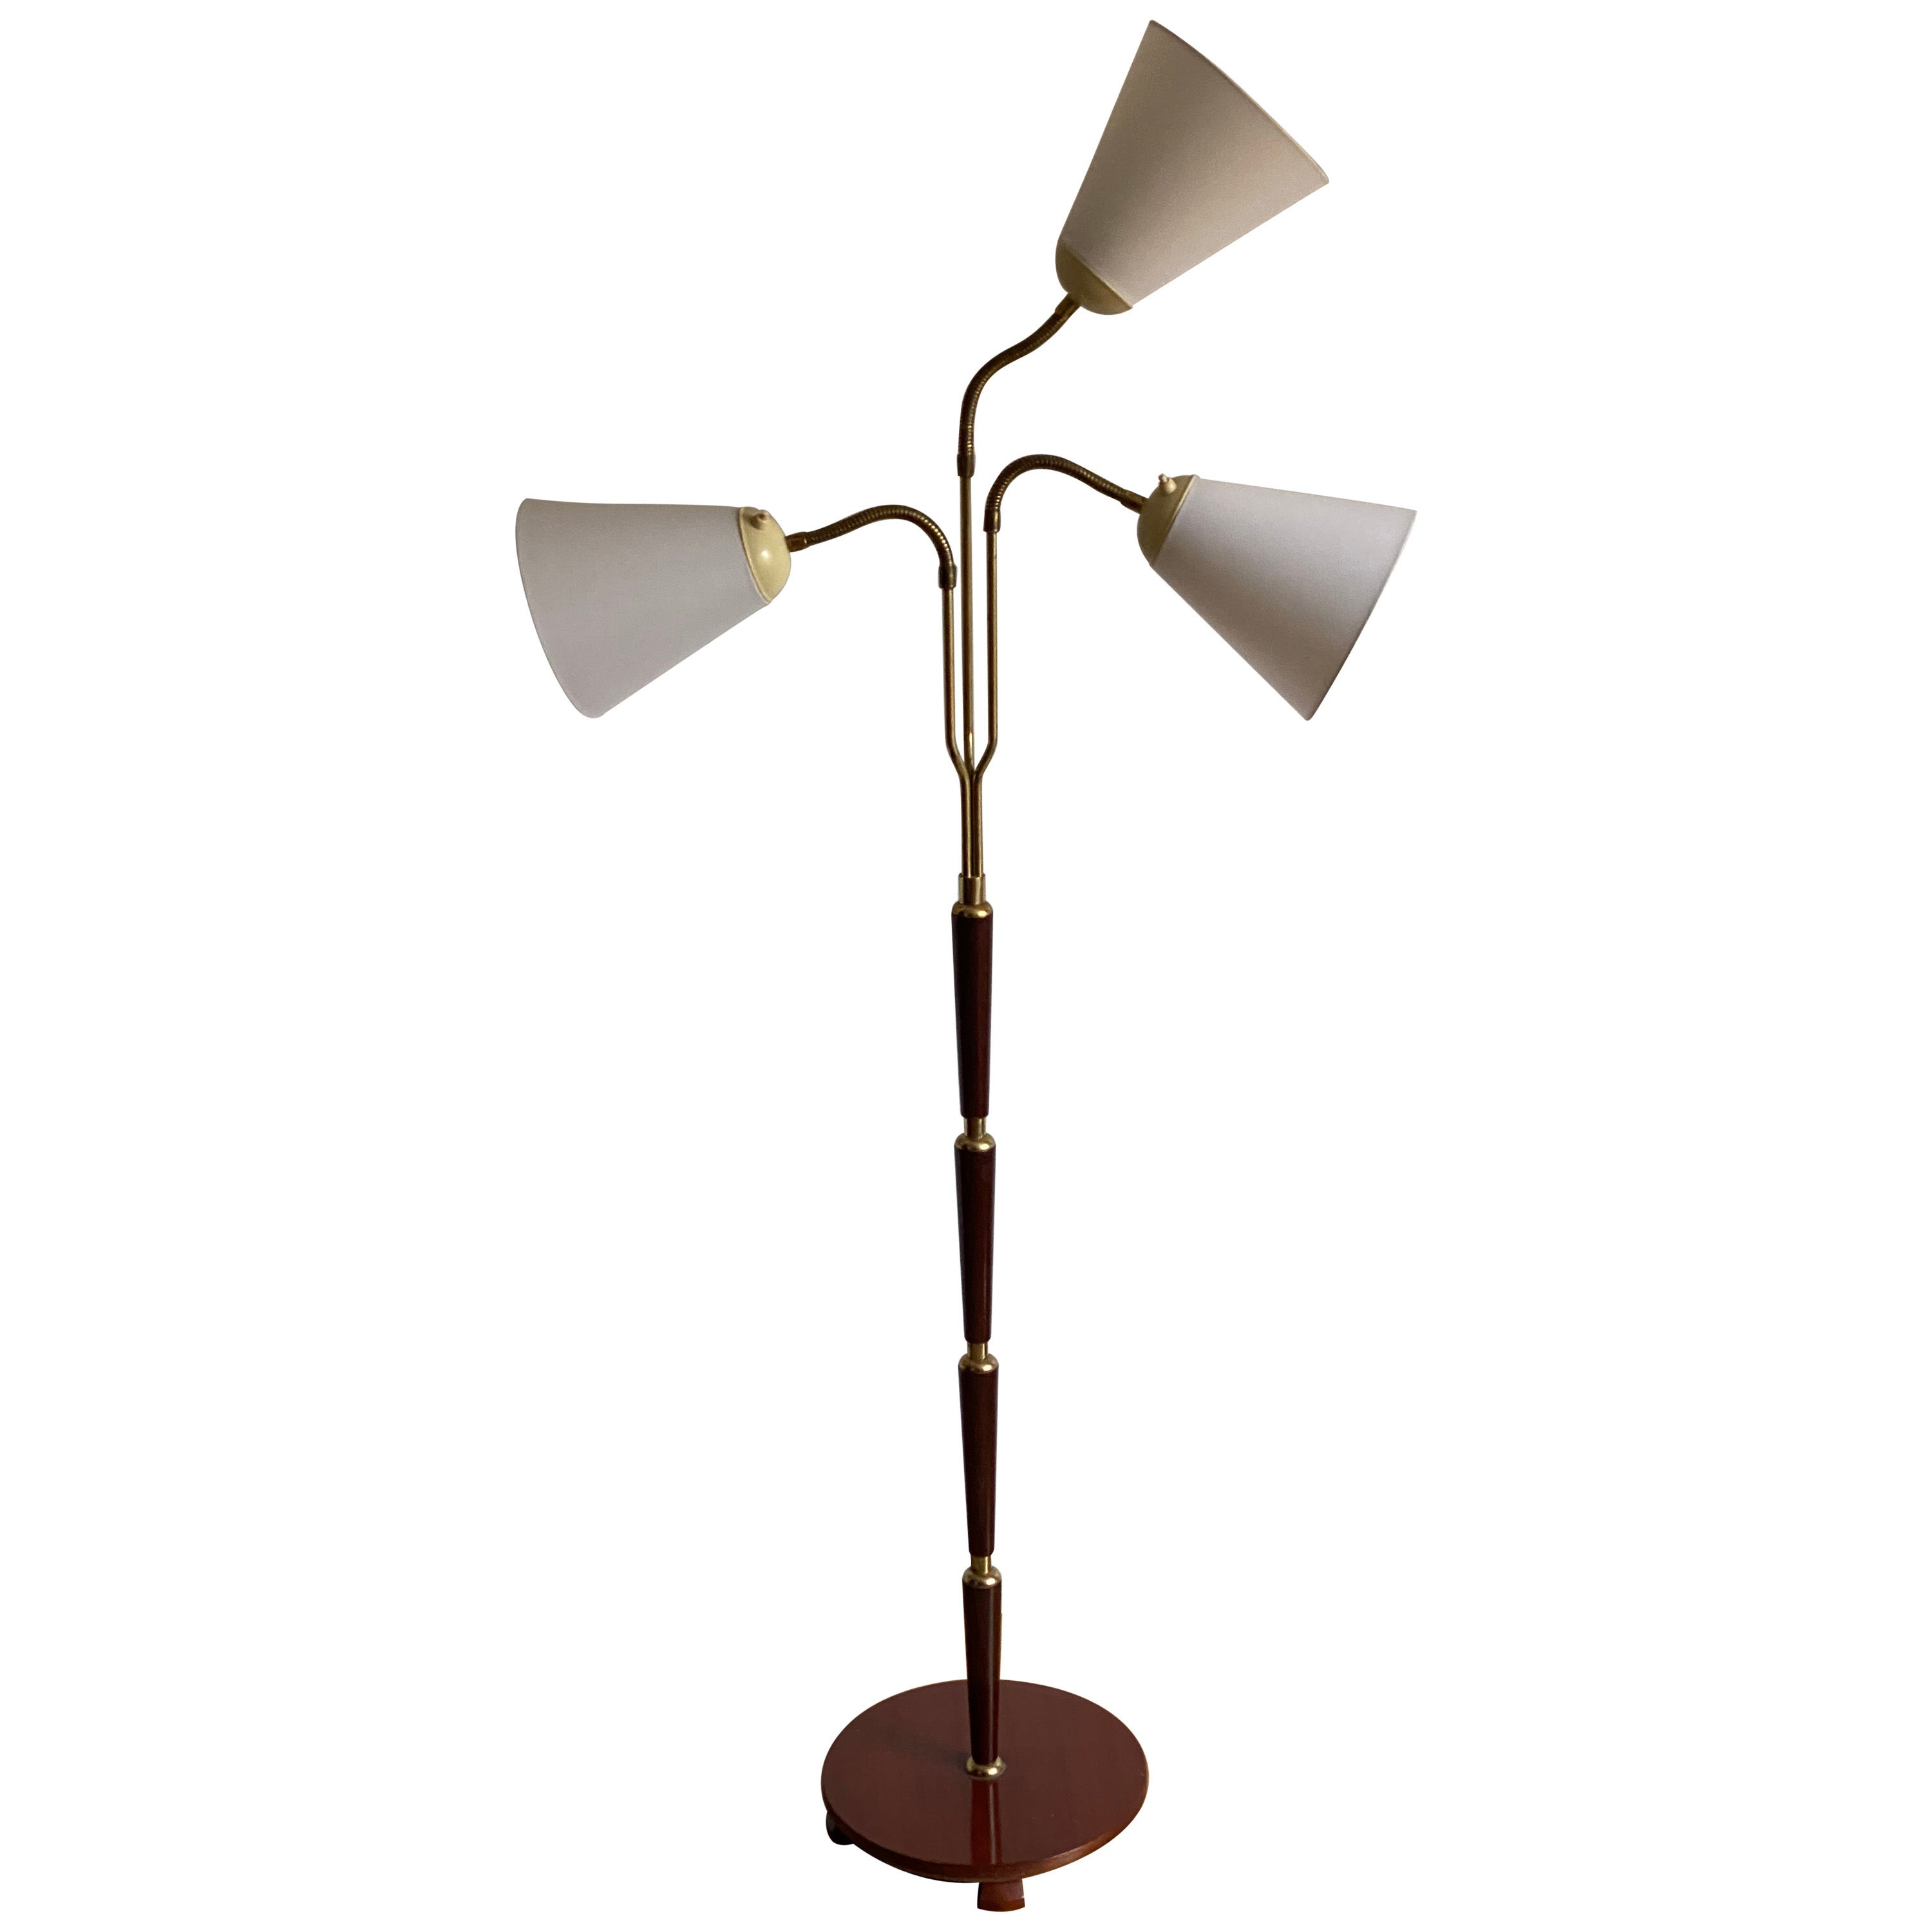 Swedish Designer, Functionalist Floor Lamp, Brass, Mahogany, Fabric, 1940s